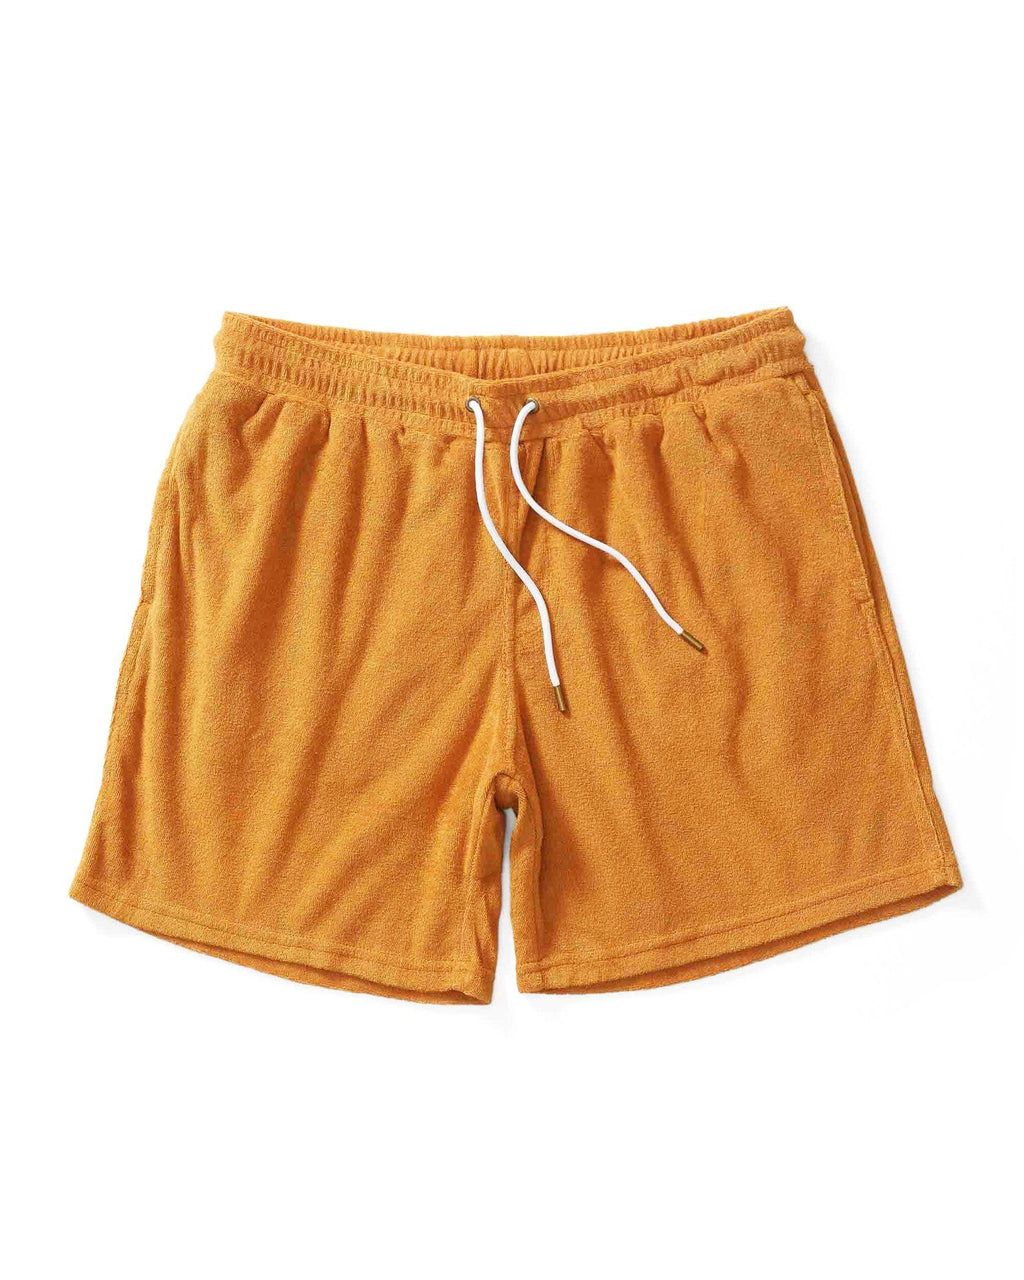 Tropez Shorts - The Tropez Terry Cloth Shorts - Burnt Sienna